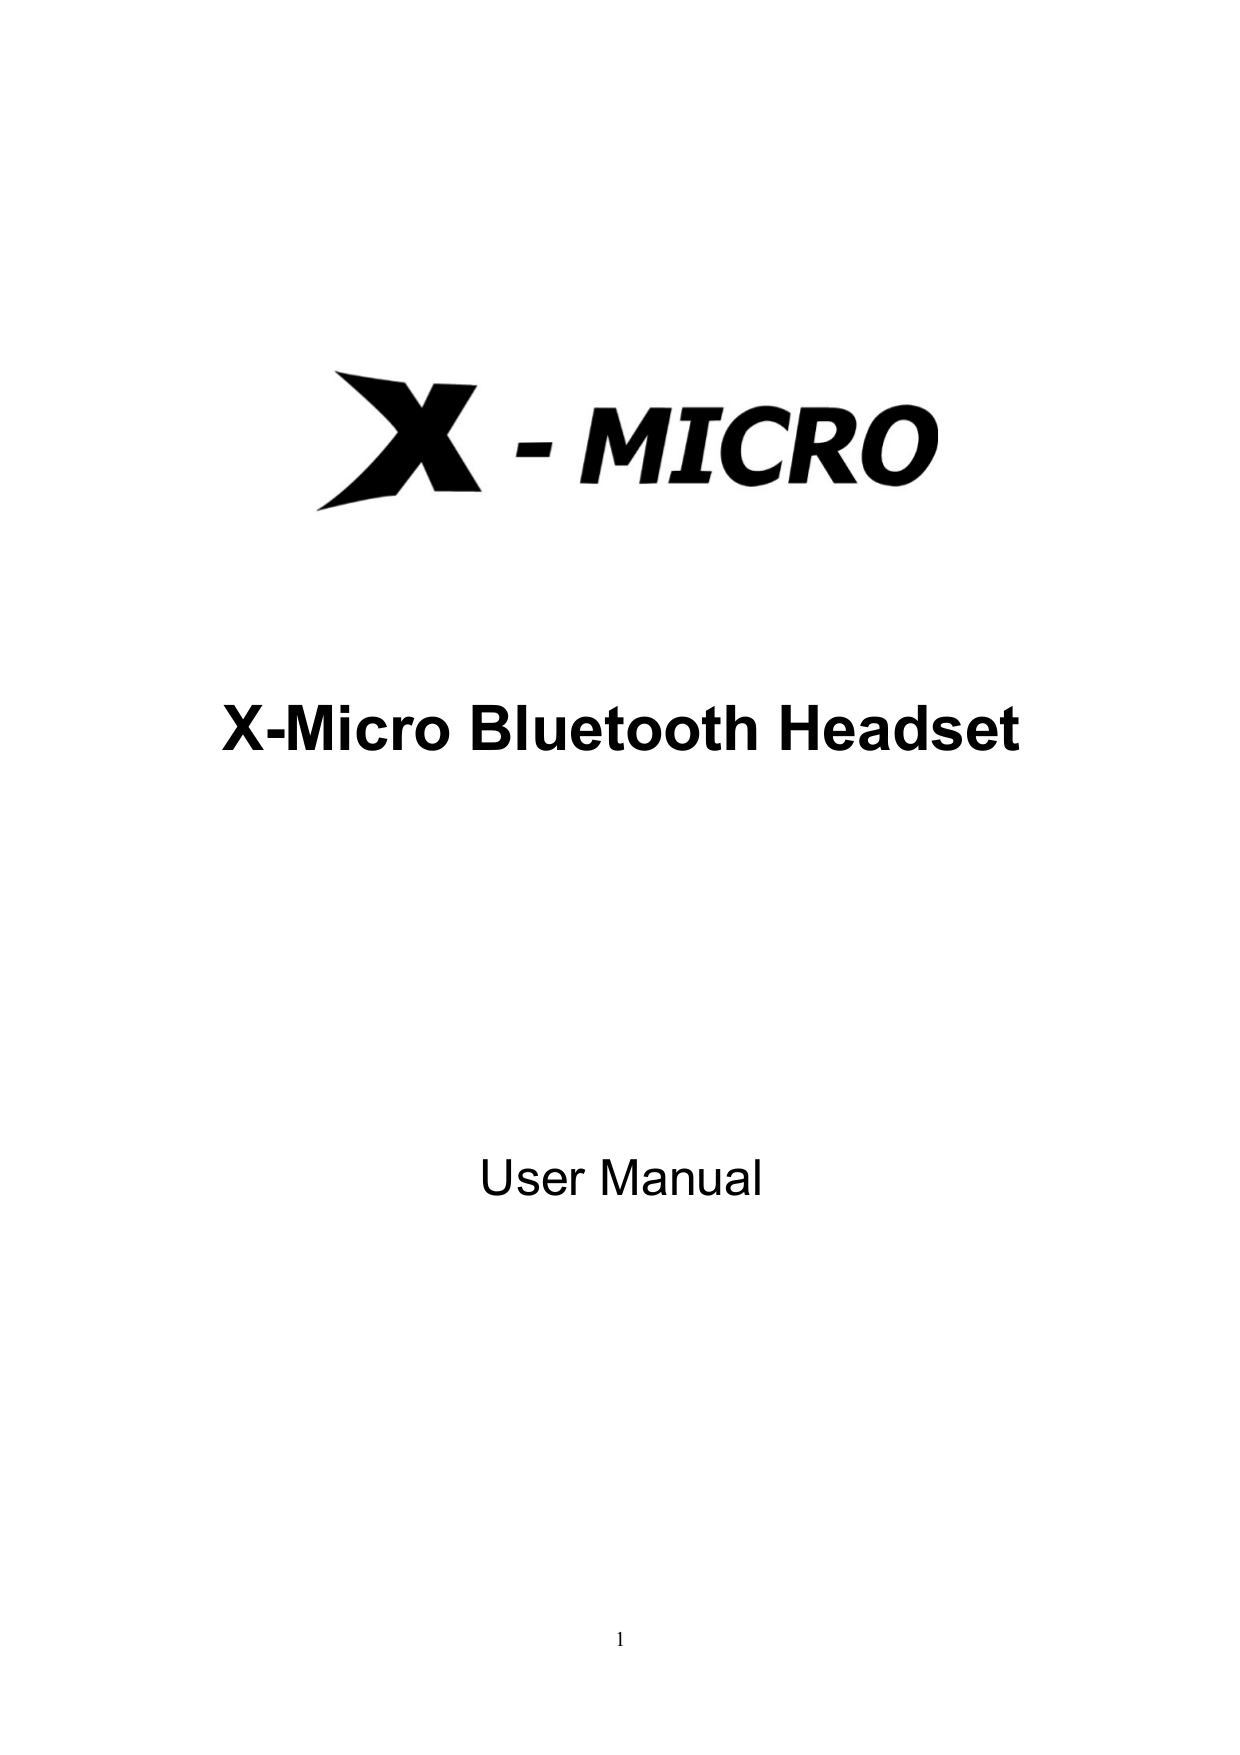 pdf for X-Micro Headset XBT-HS2A manual